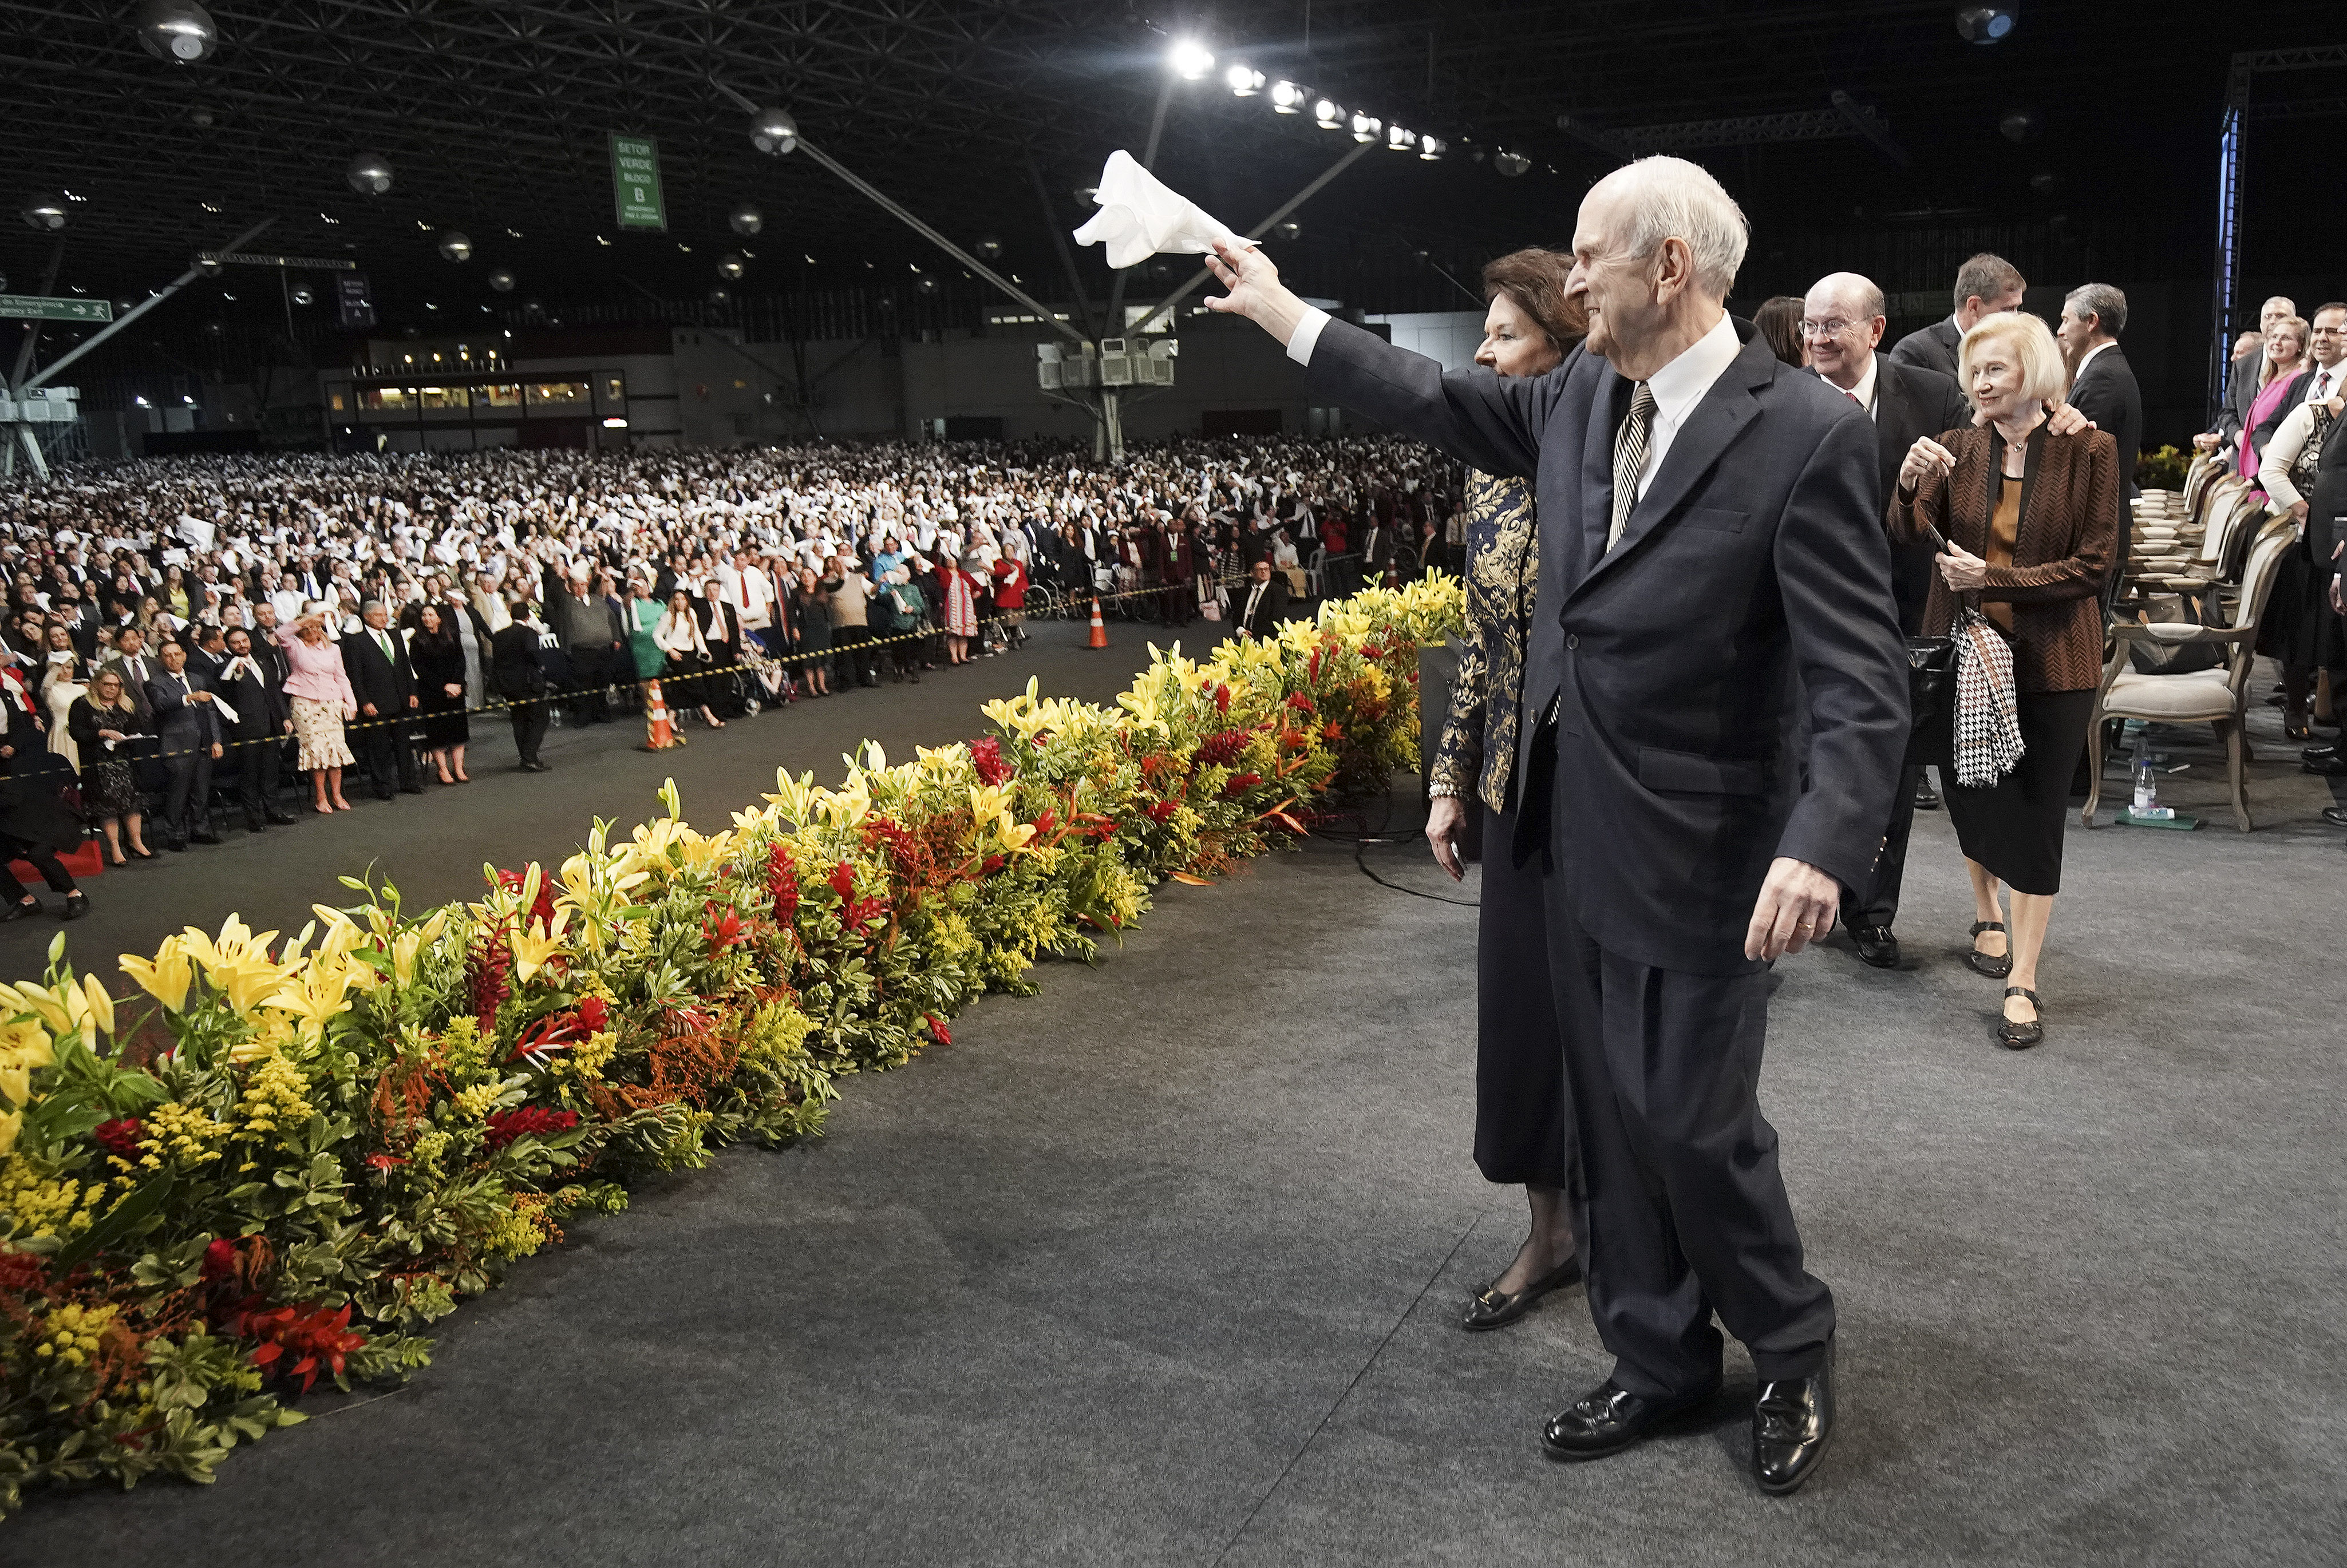 President Russell M. Nelson of The Church of Jesus Christ of Latter-day Saints and his wife, Sister Wendy Nelson, and Elder Quentin L. Cook of the Quorum of the Twelve Apostles and his wife, Sister Mary Cook, wave to attendees after a devotional in Sao Paulo, Brazil, on Sunday, Sept. 1, 2019.